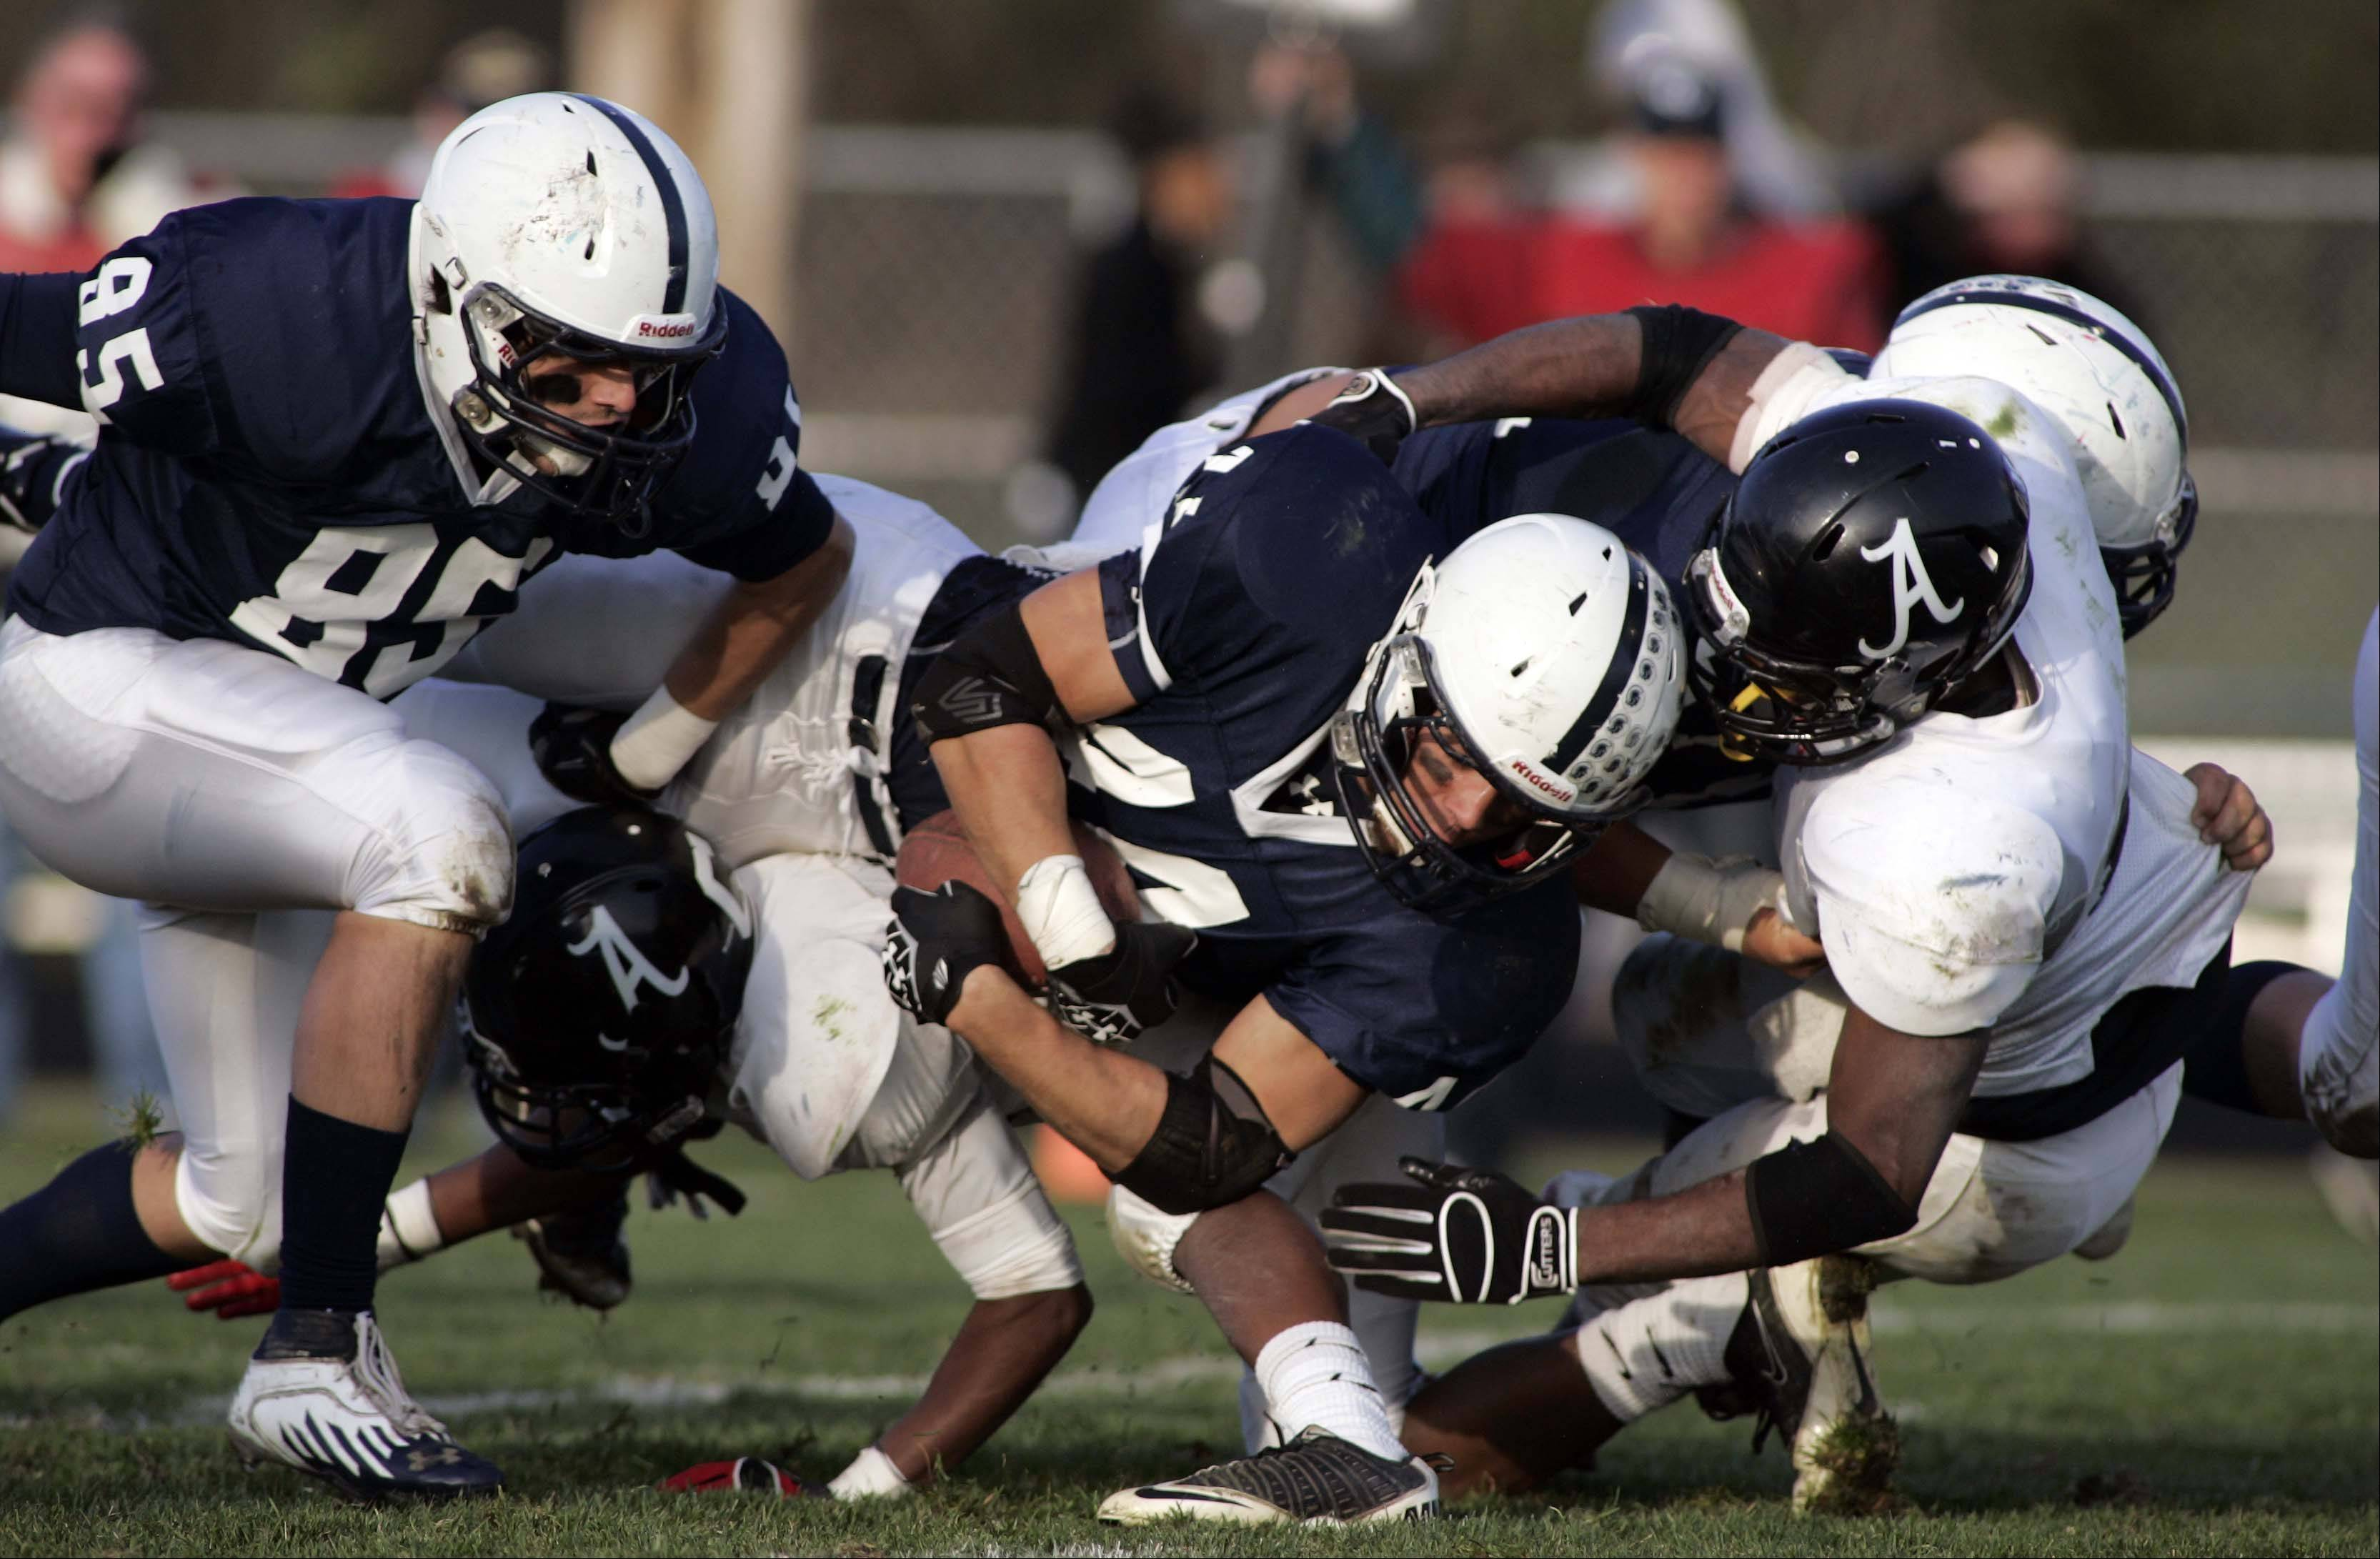 Cary-Grove's Kyle Norberg (44) is pulled down close to the goal line during the second quarter during Rockford Auburn at Cary-Grove in IHSA Class 6A playoff Football Saturday October 27, 2012.